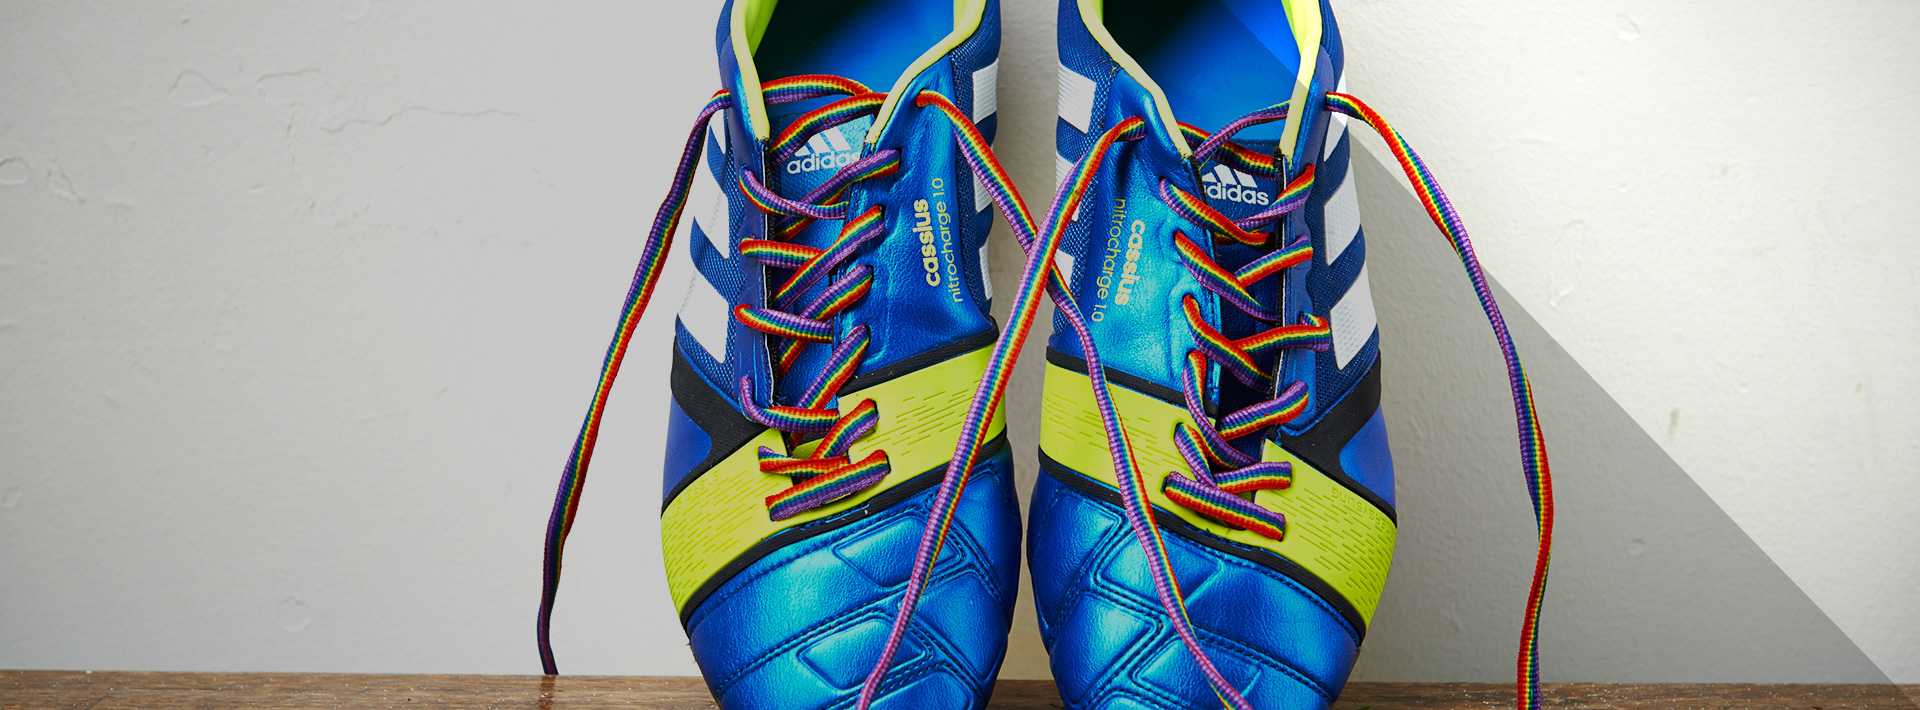 Football boots with Rainbow Laces